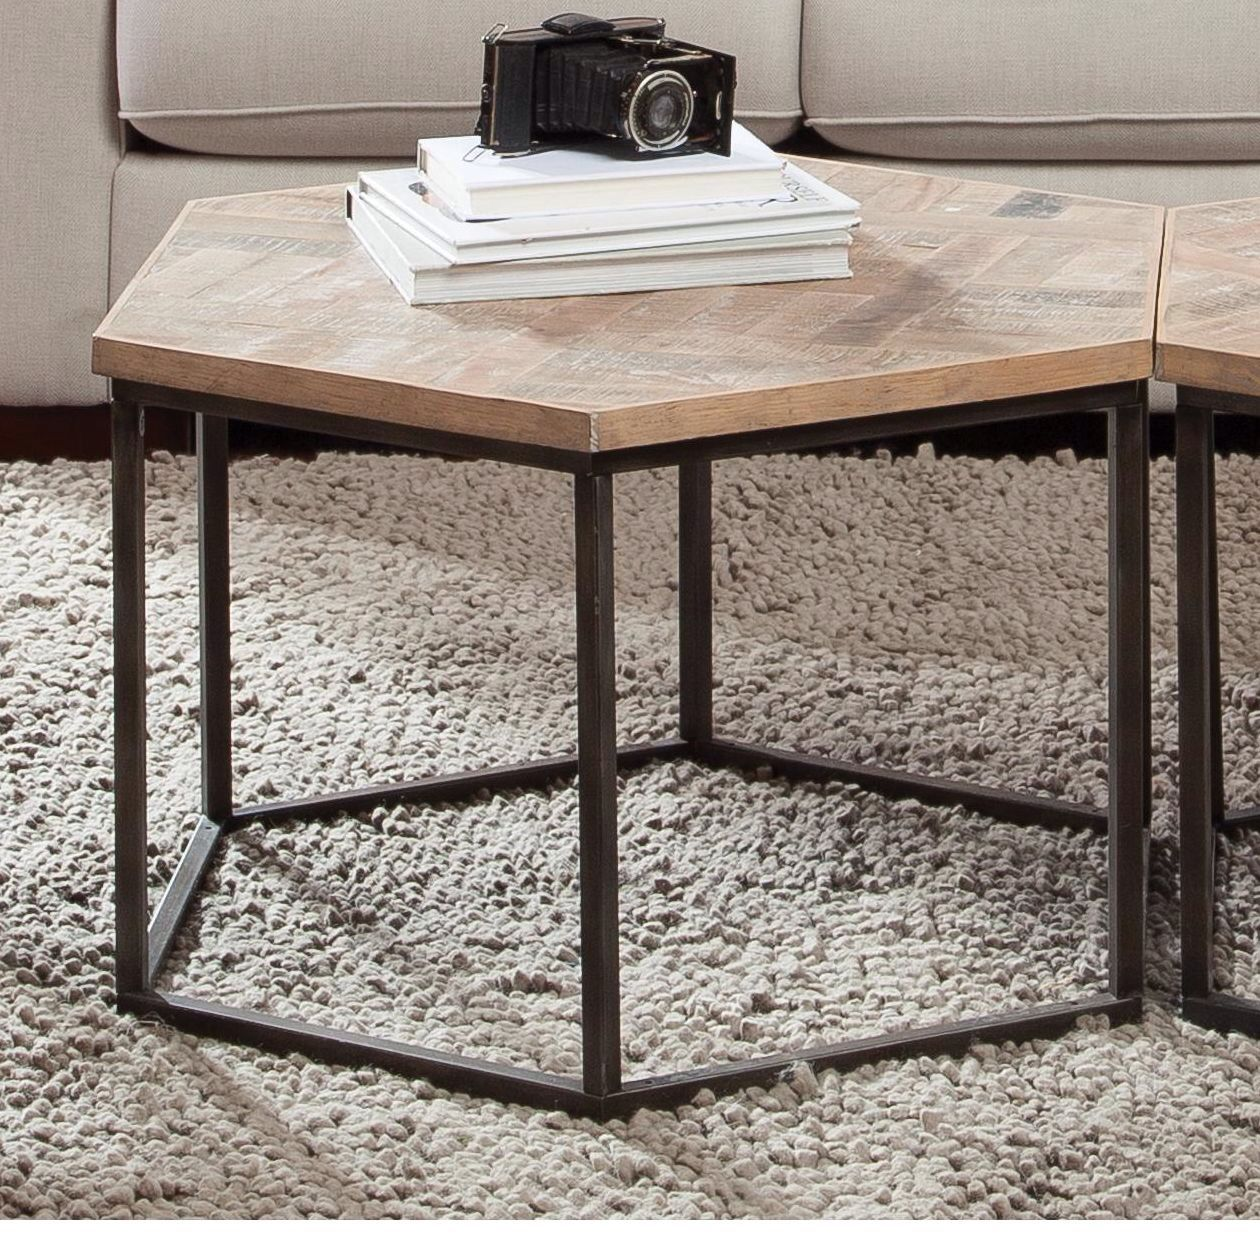 Impressive 30 Coffee Table Design For Your Living Room Table Decor Living Room Modern Furniture Living Room Center Table Living Room [ 1080 x 1080 Pixel ]